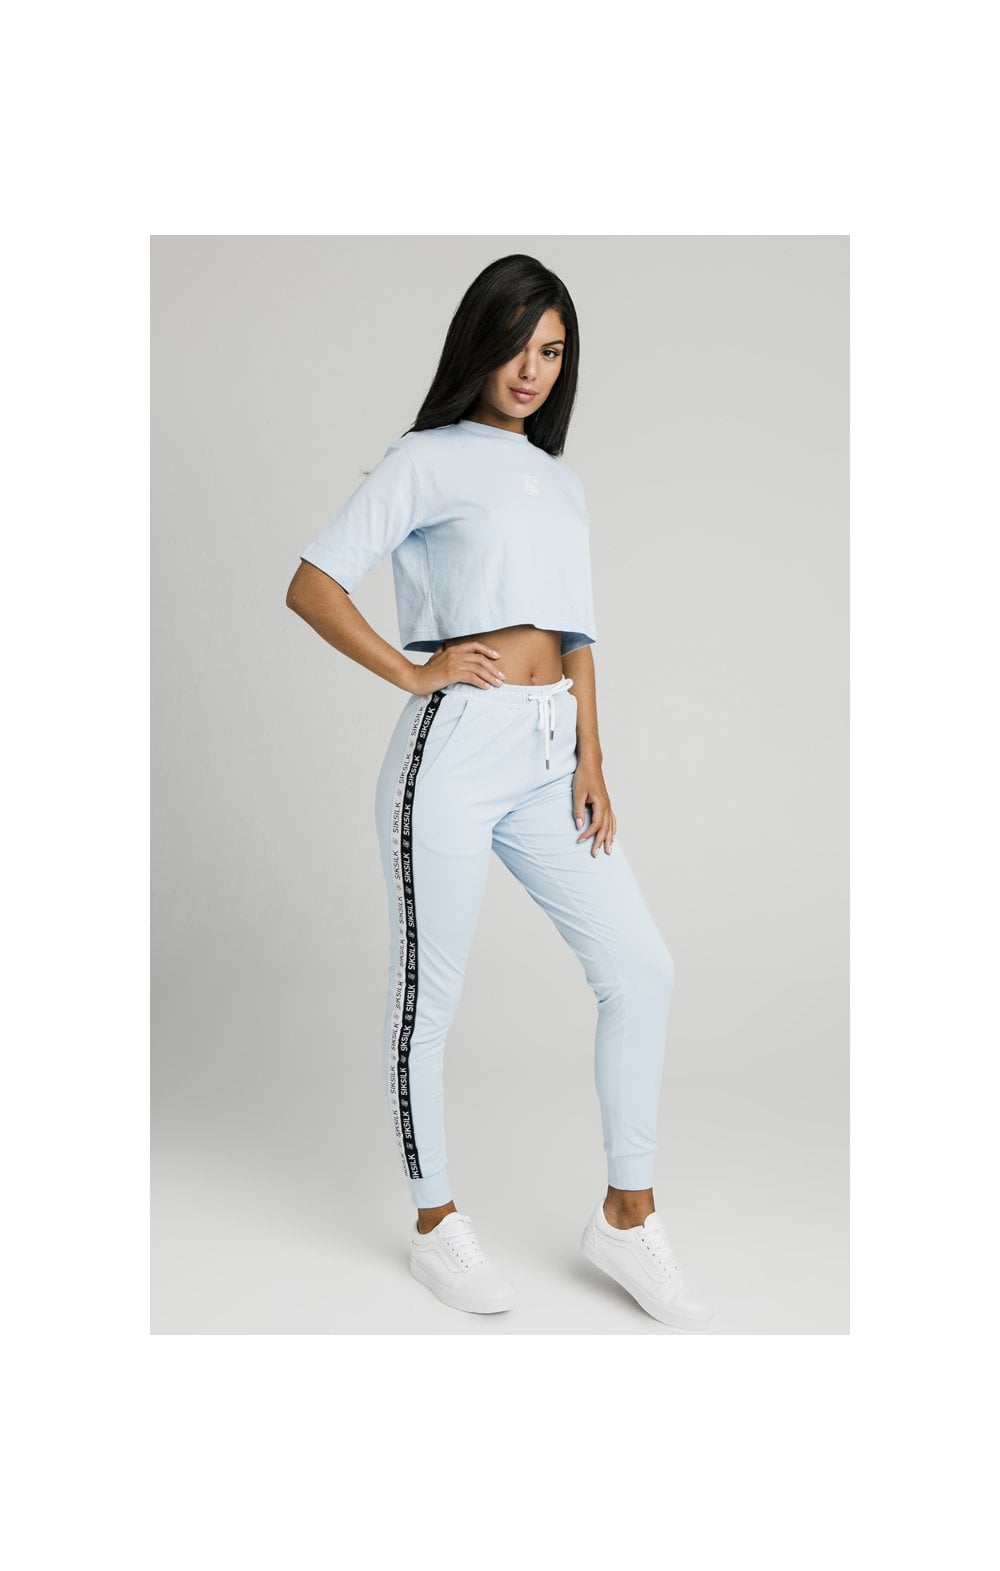 SikSilk Oversize Crop Tee - Light Blue (2)